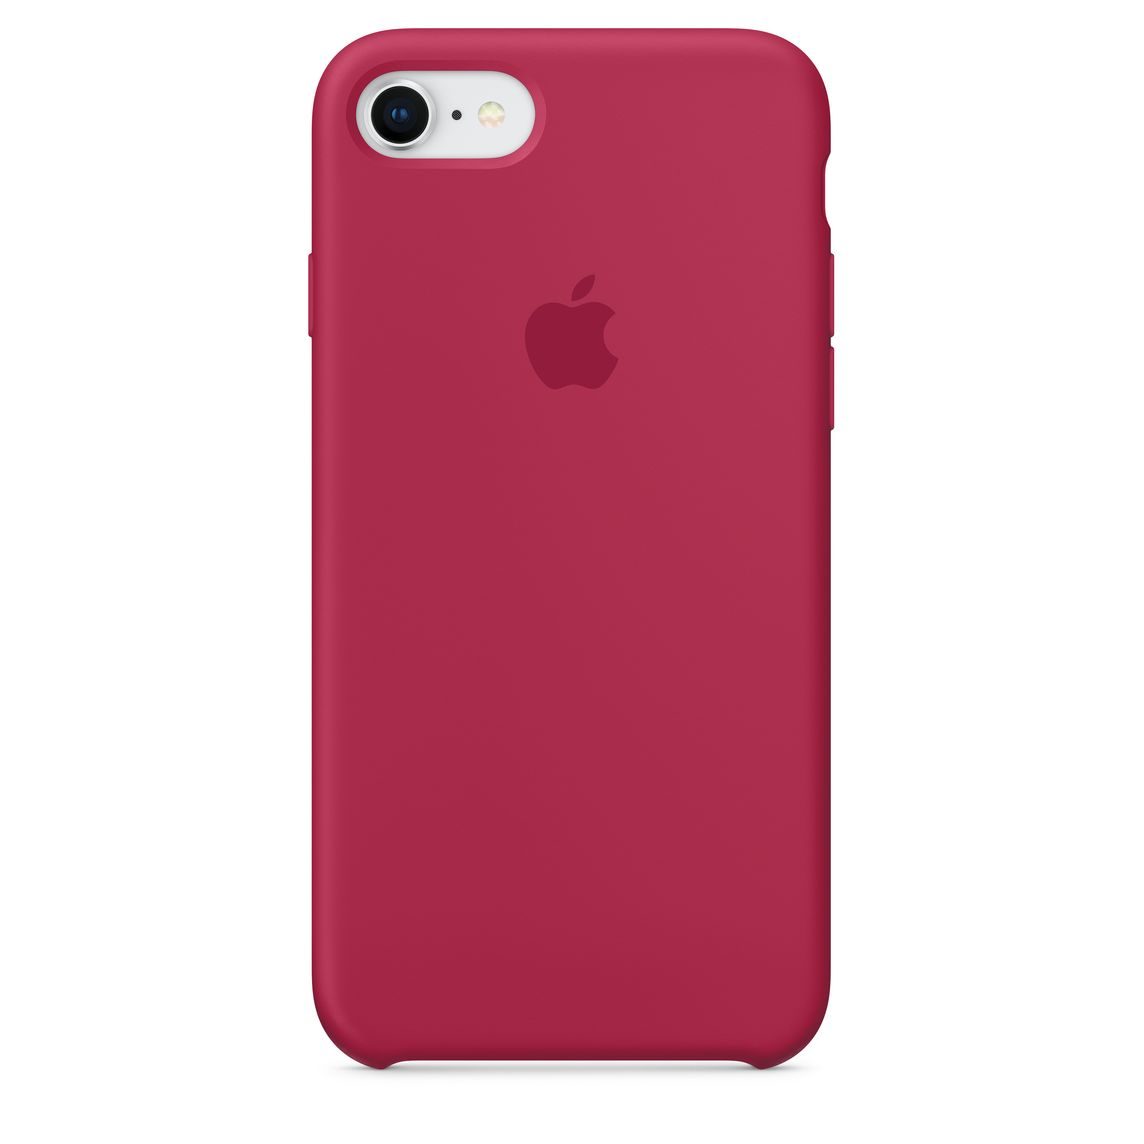 huge discount 2dae3 0084c iPhone 8 / 7 Silicone Case - Rose Red